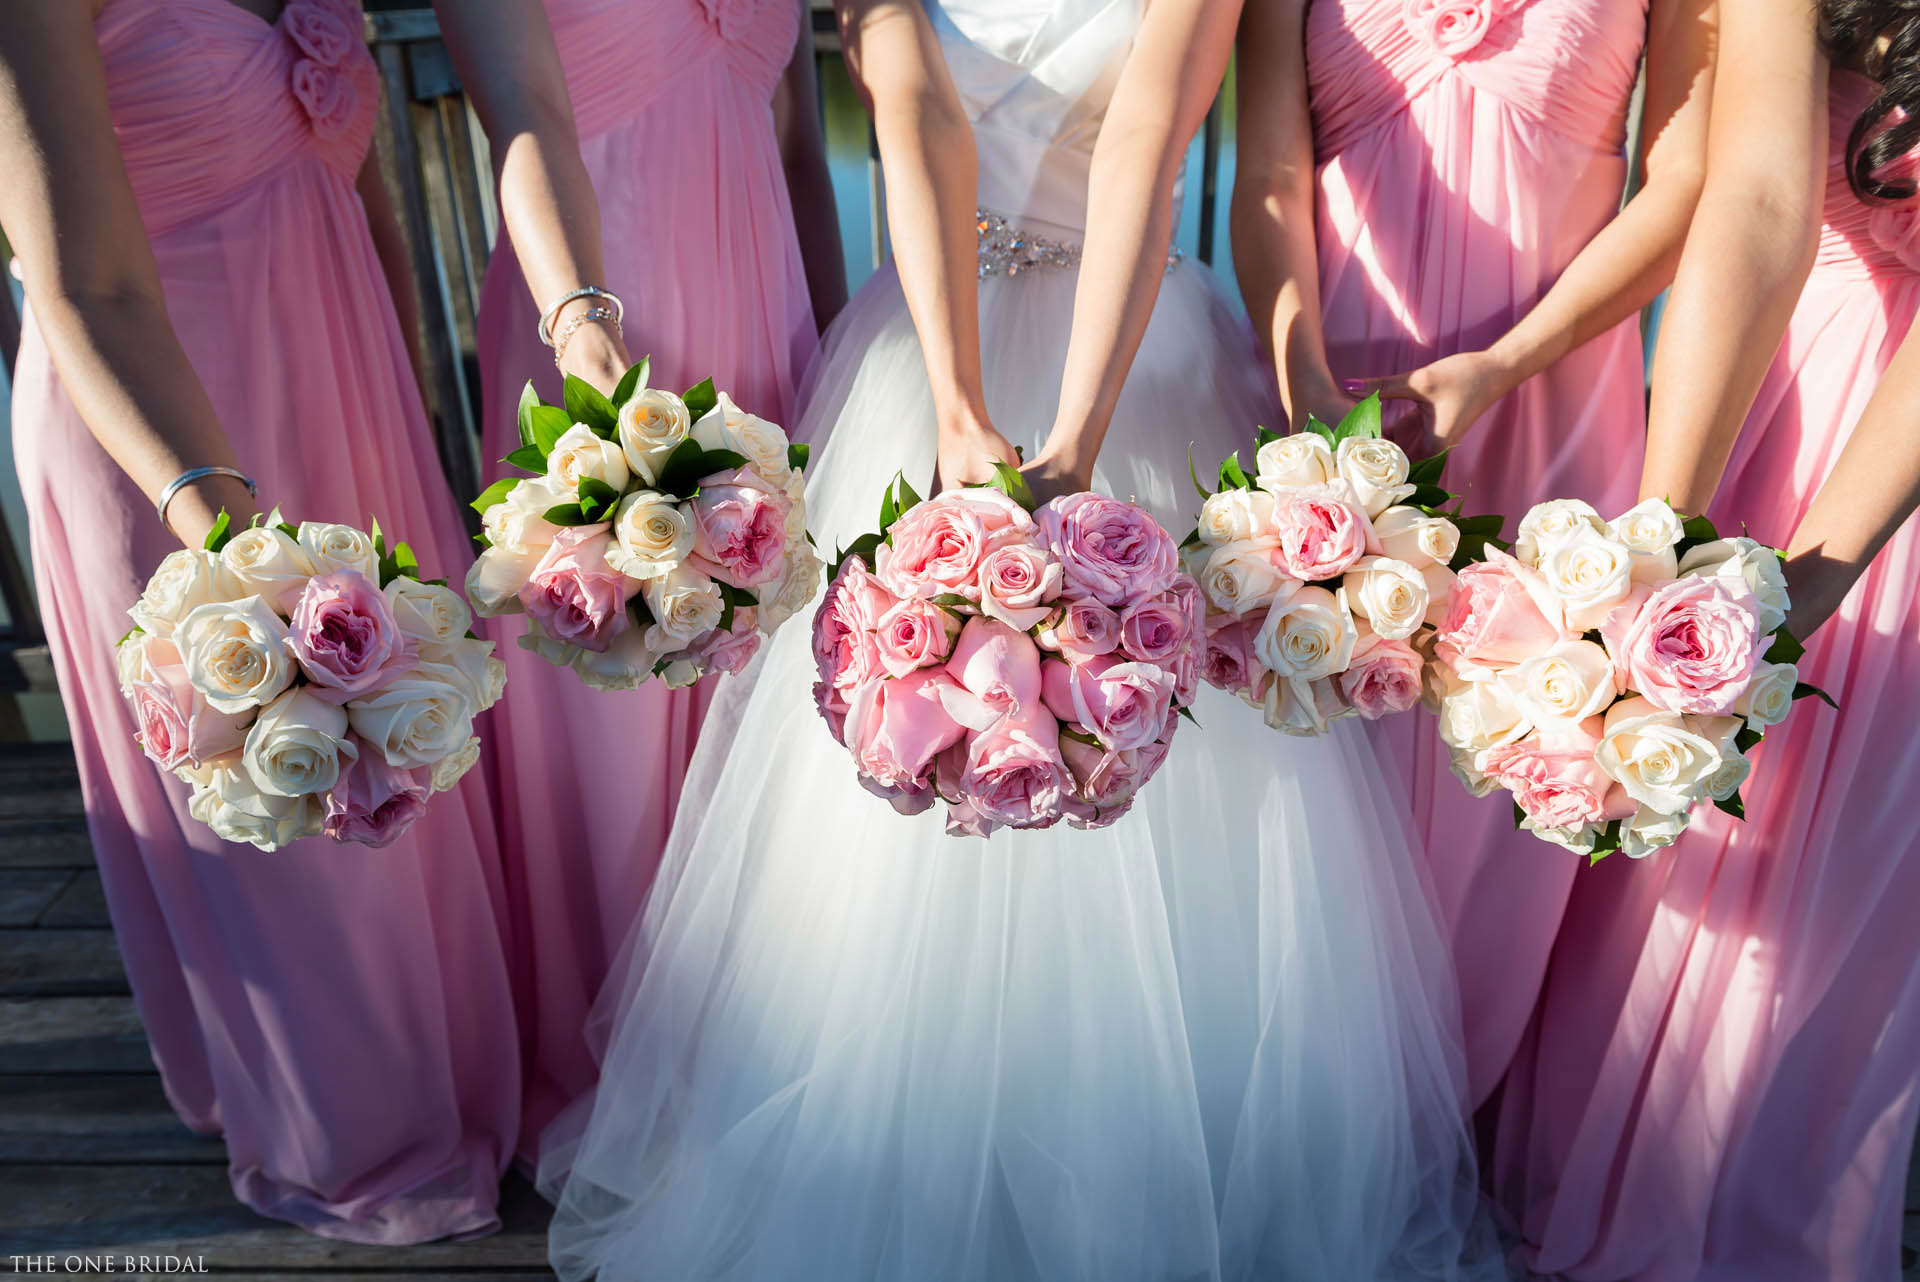 Custom Bridesmaid Dress in Pink